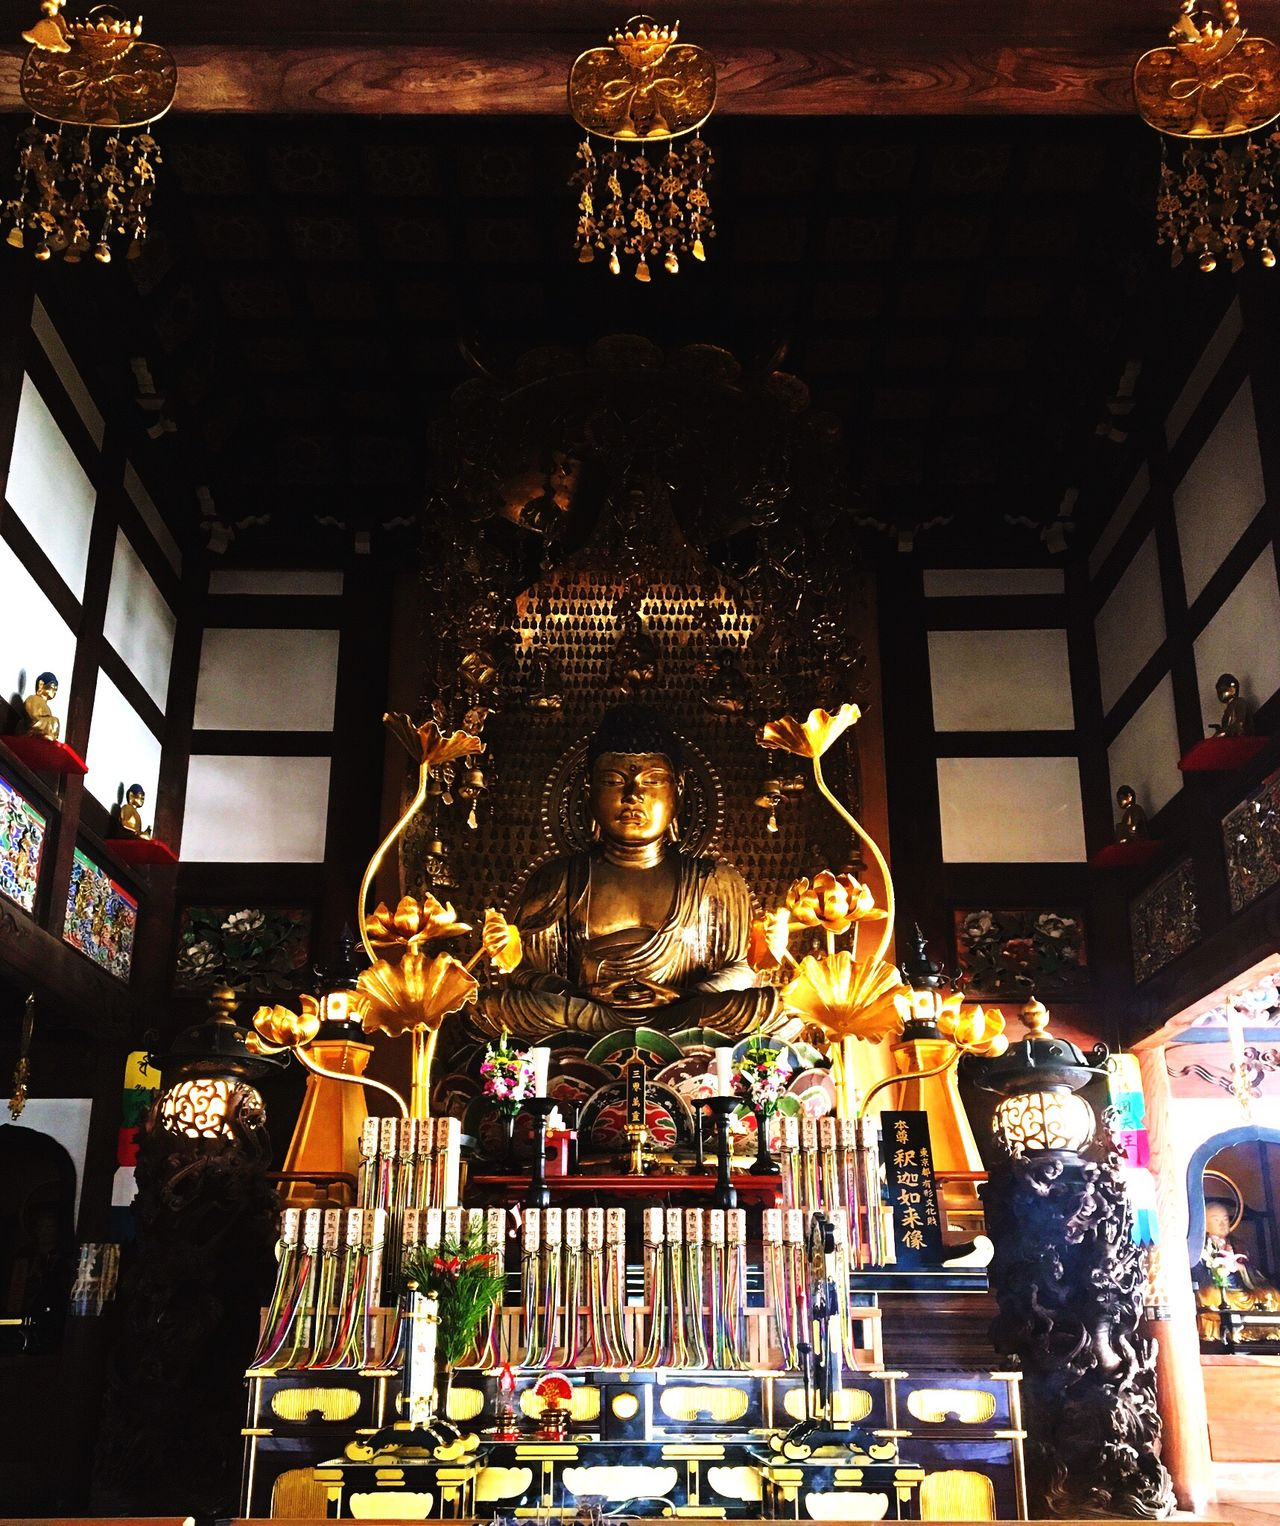 釈迦如来像。 Sakyamuni (sage Of The Sakyas) Buddha Statue Spirituality Statue Cultures Tradition Japanese Traditional Tokyo Days Tradition Japanese Culture Architecture Tokyo Hello World Indoors  釈迦如来像 Religion Statue Indoors  No People Japanese Temple Temple